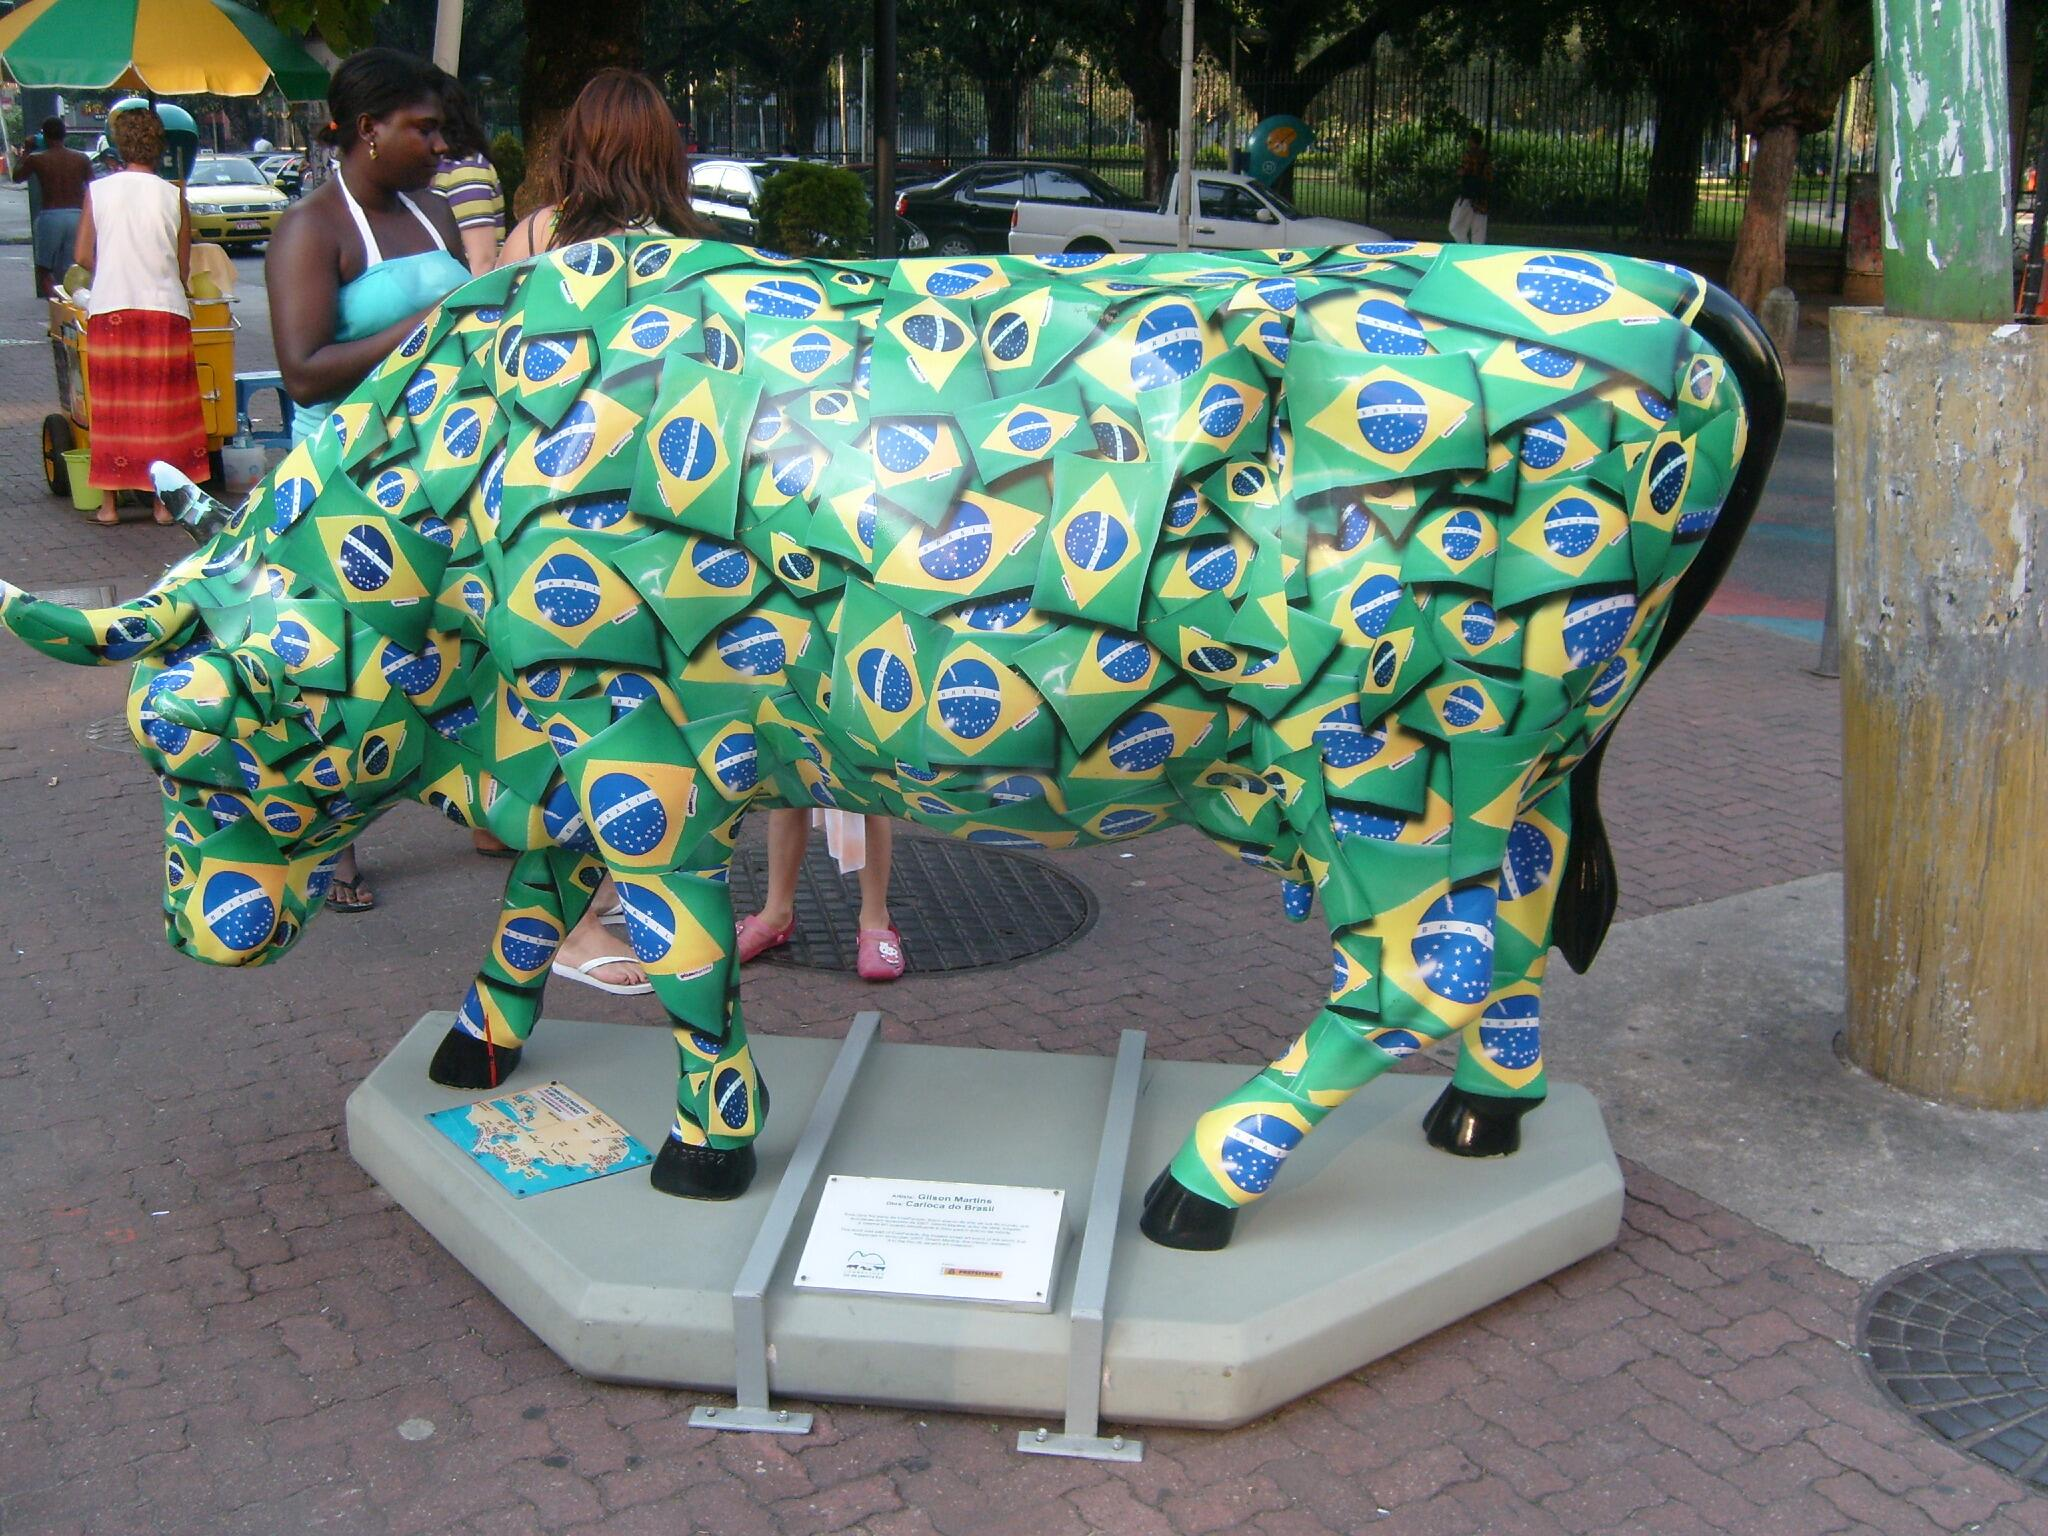 RT @EatSoccerTV: Get ready for sensory overload. Even the cows are more vibrant in Brazil! #WorldCup2014 #travel http://t.co/M5xyoyXwYk